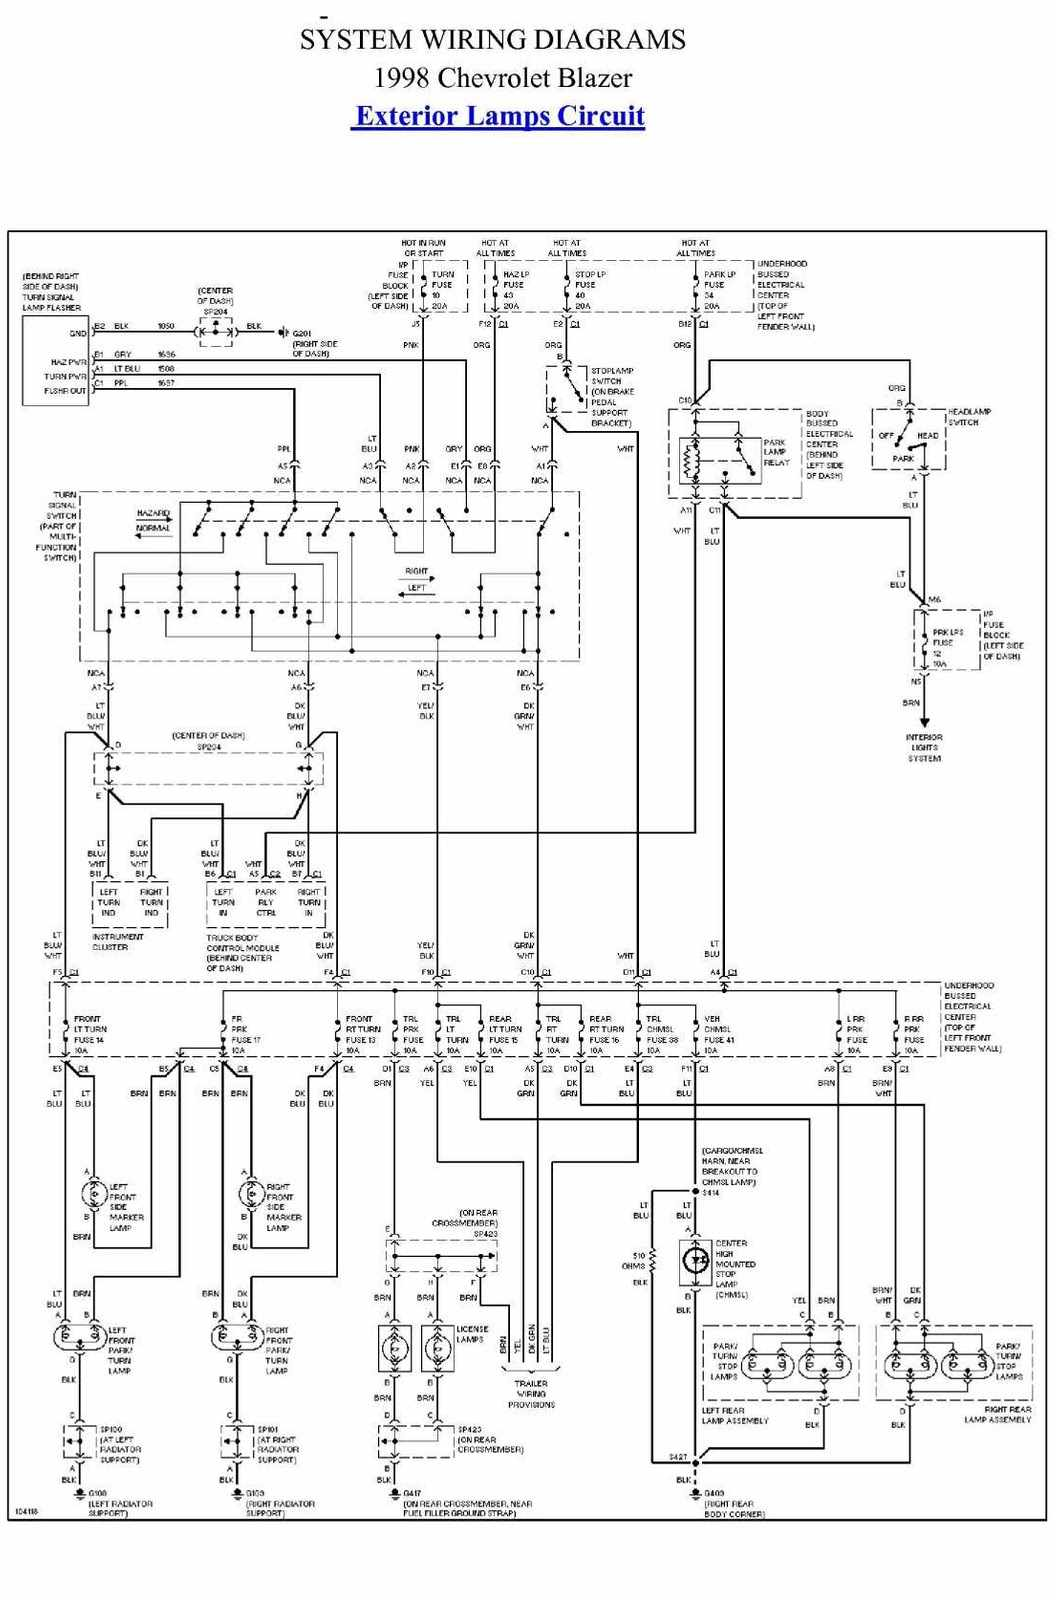 [DOC] Diagram Wiring Diagram For 1987 Blazer Ebook